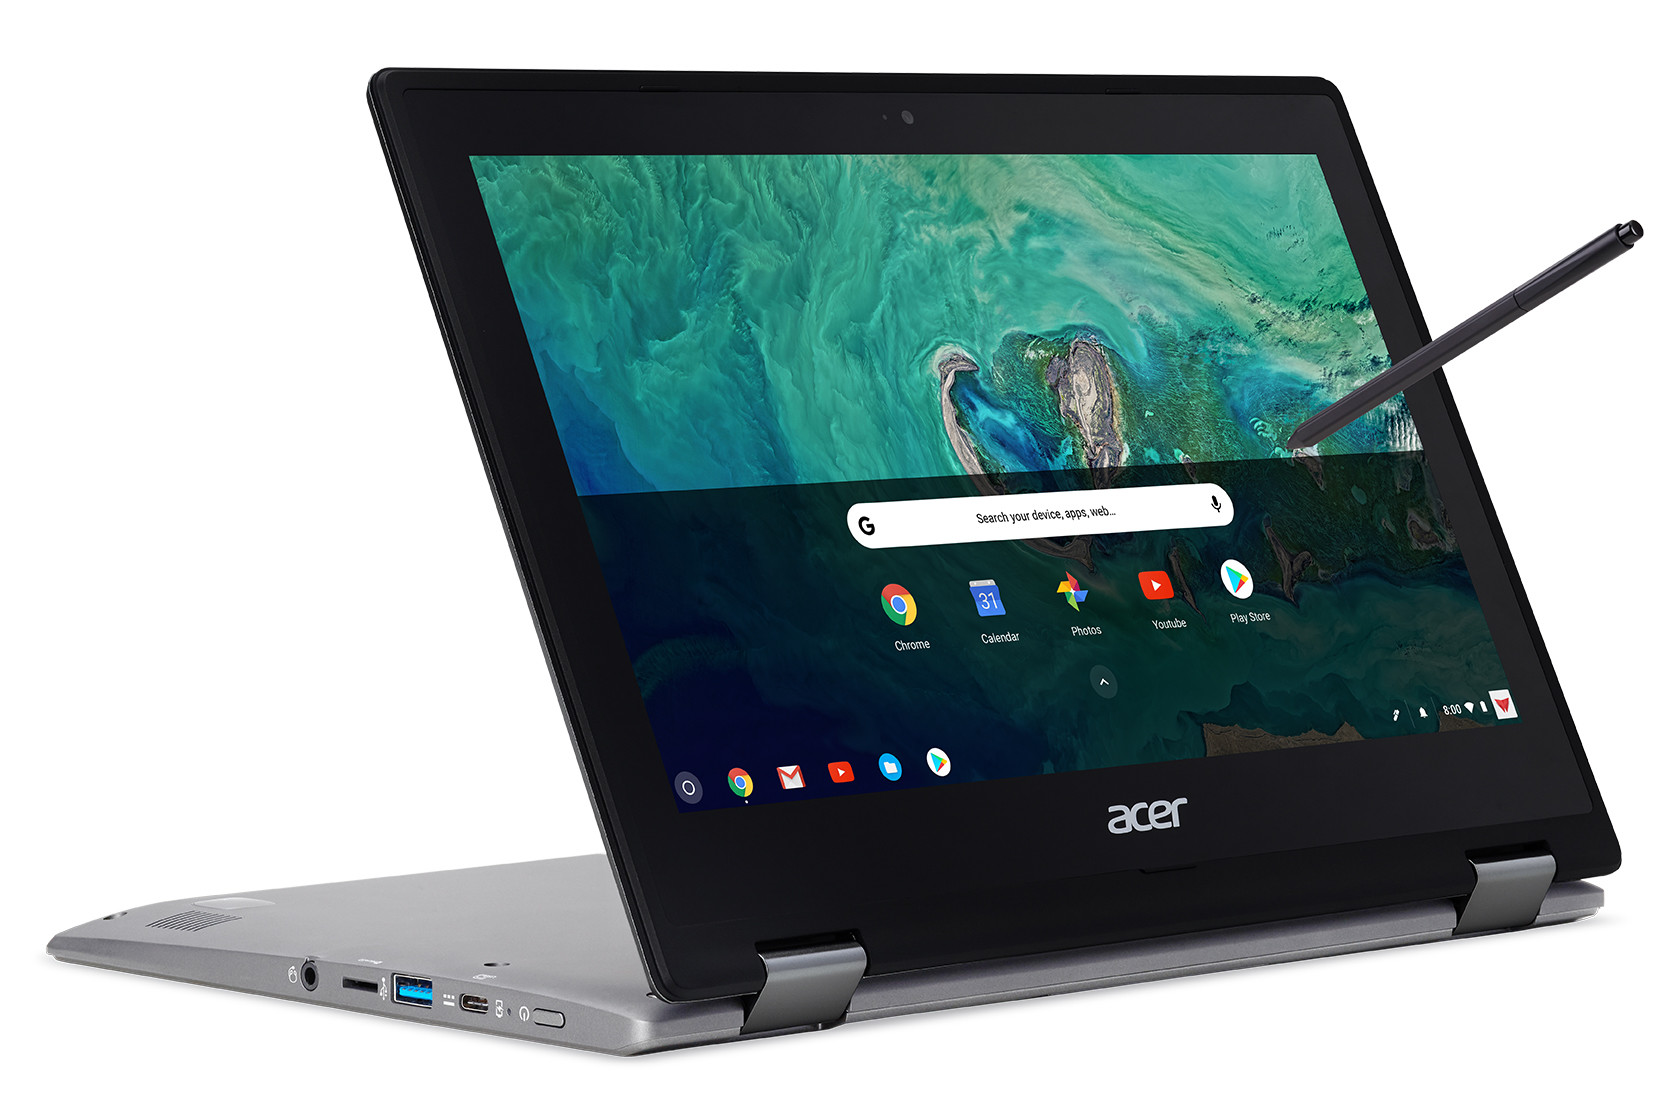 Acer has announced two new Chromebooks and a Chromebox